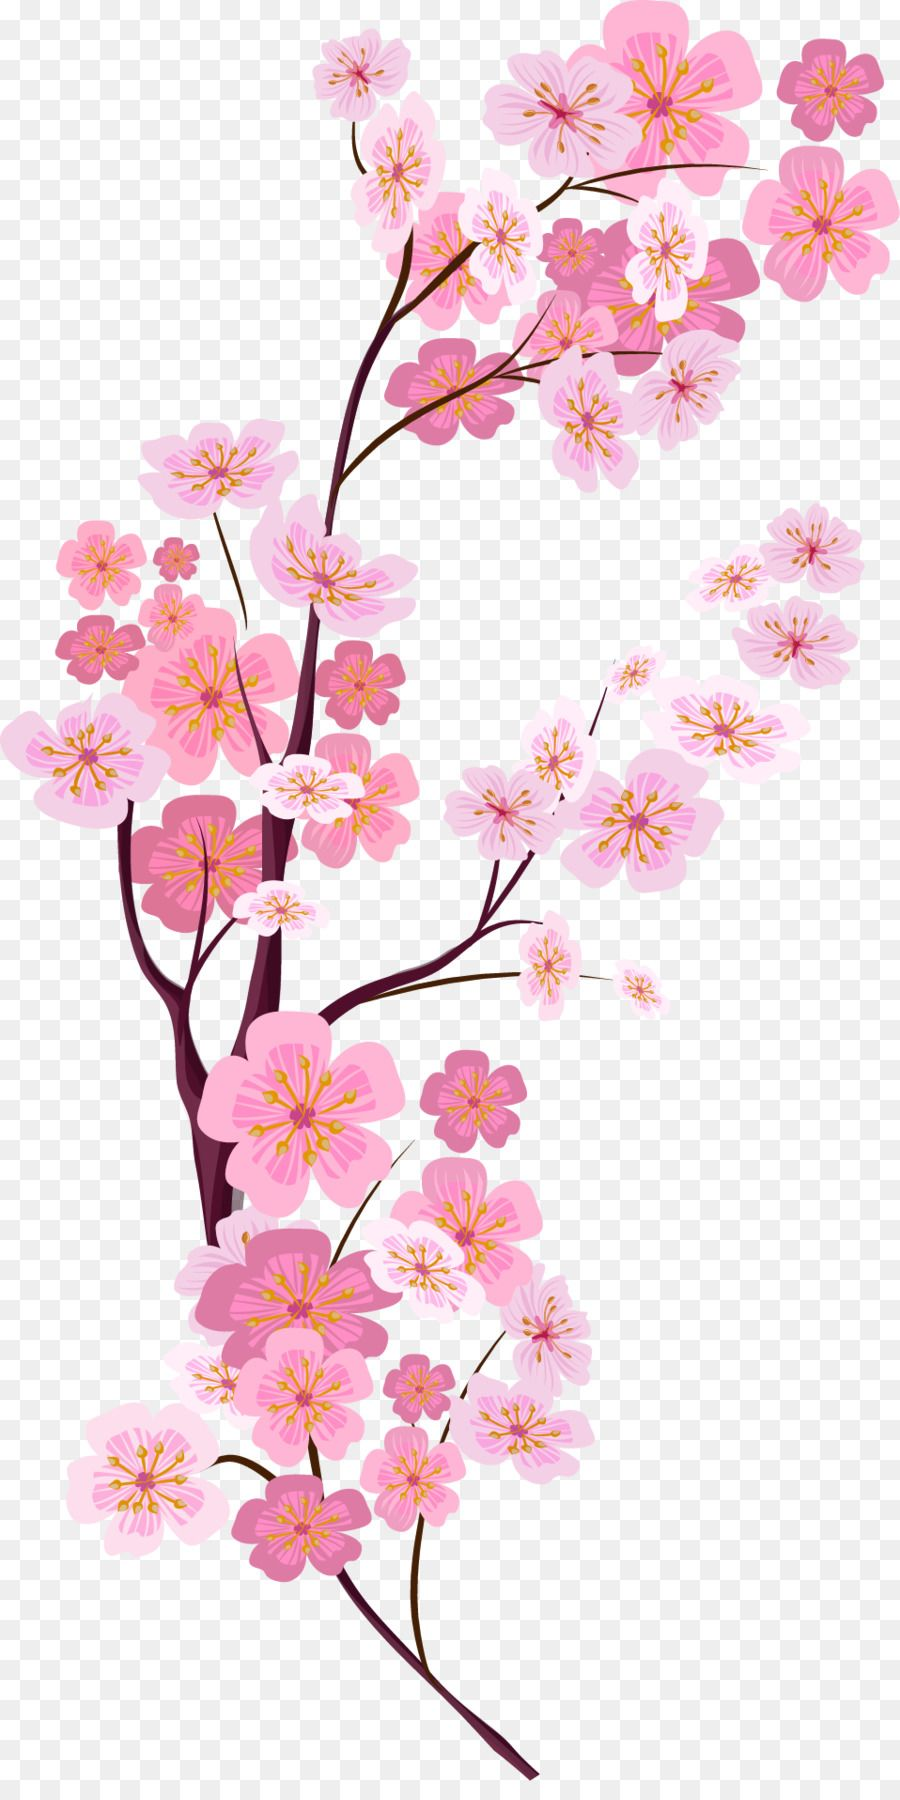 Cherry Blossom Euclidean Vector Vector Painted Pink Cherry Blossoms Flower Png Images Pink Floral Background Cherry Blossom Background